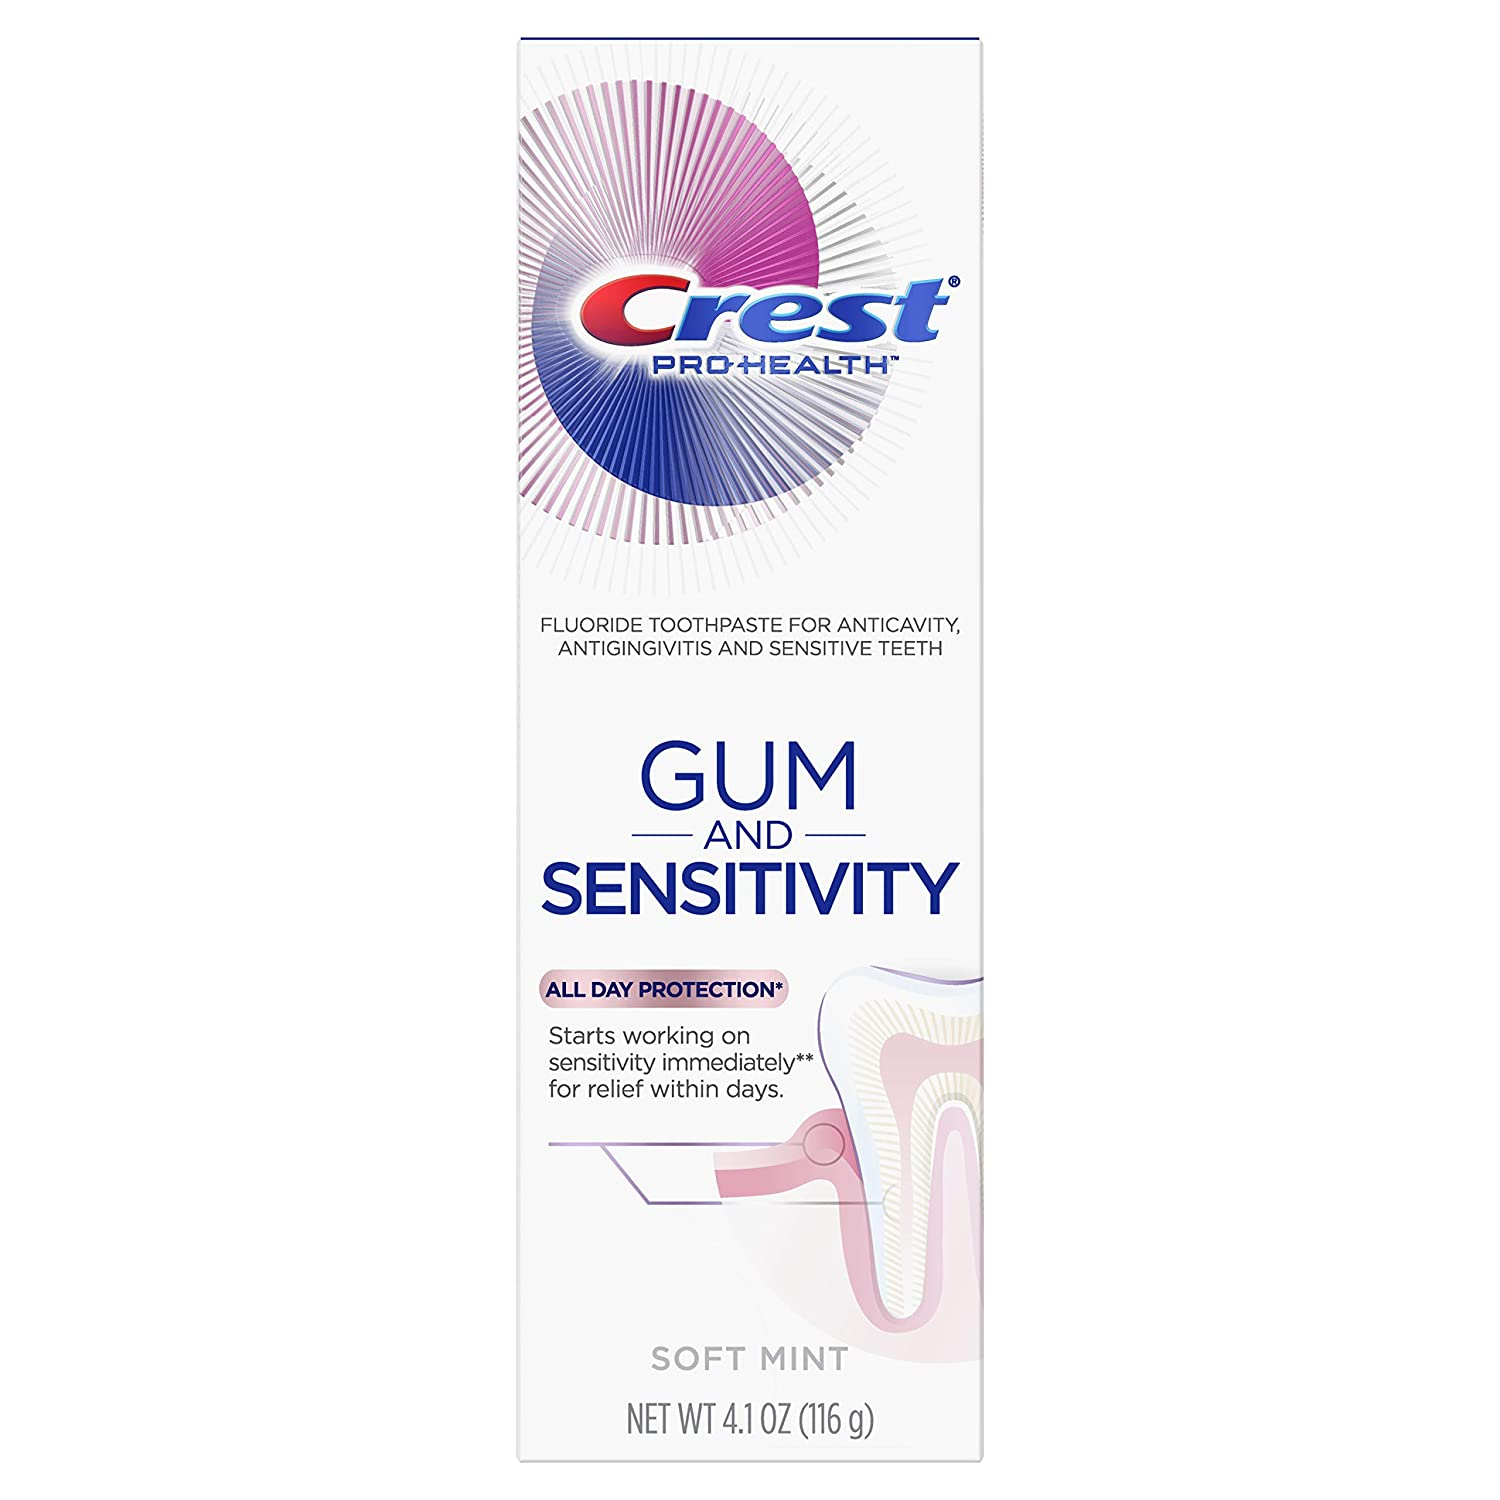 Crest Pro-Health Gum And Sensitivity, Sensitive Toothpaste, All Day Protection, 4.1 Ounce